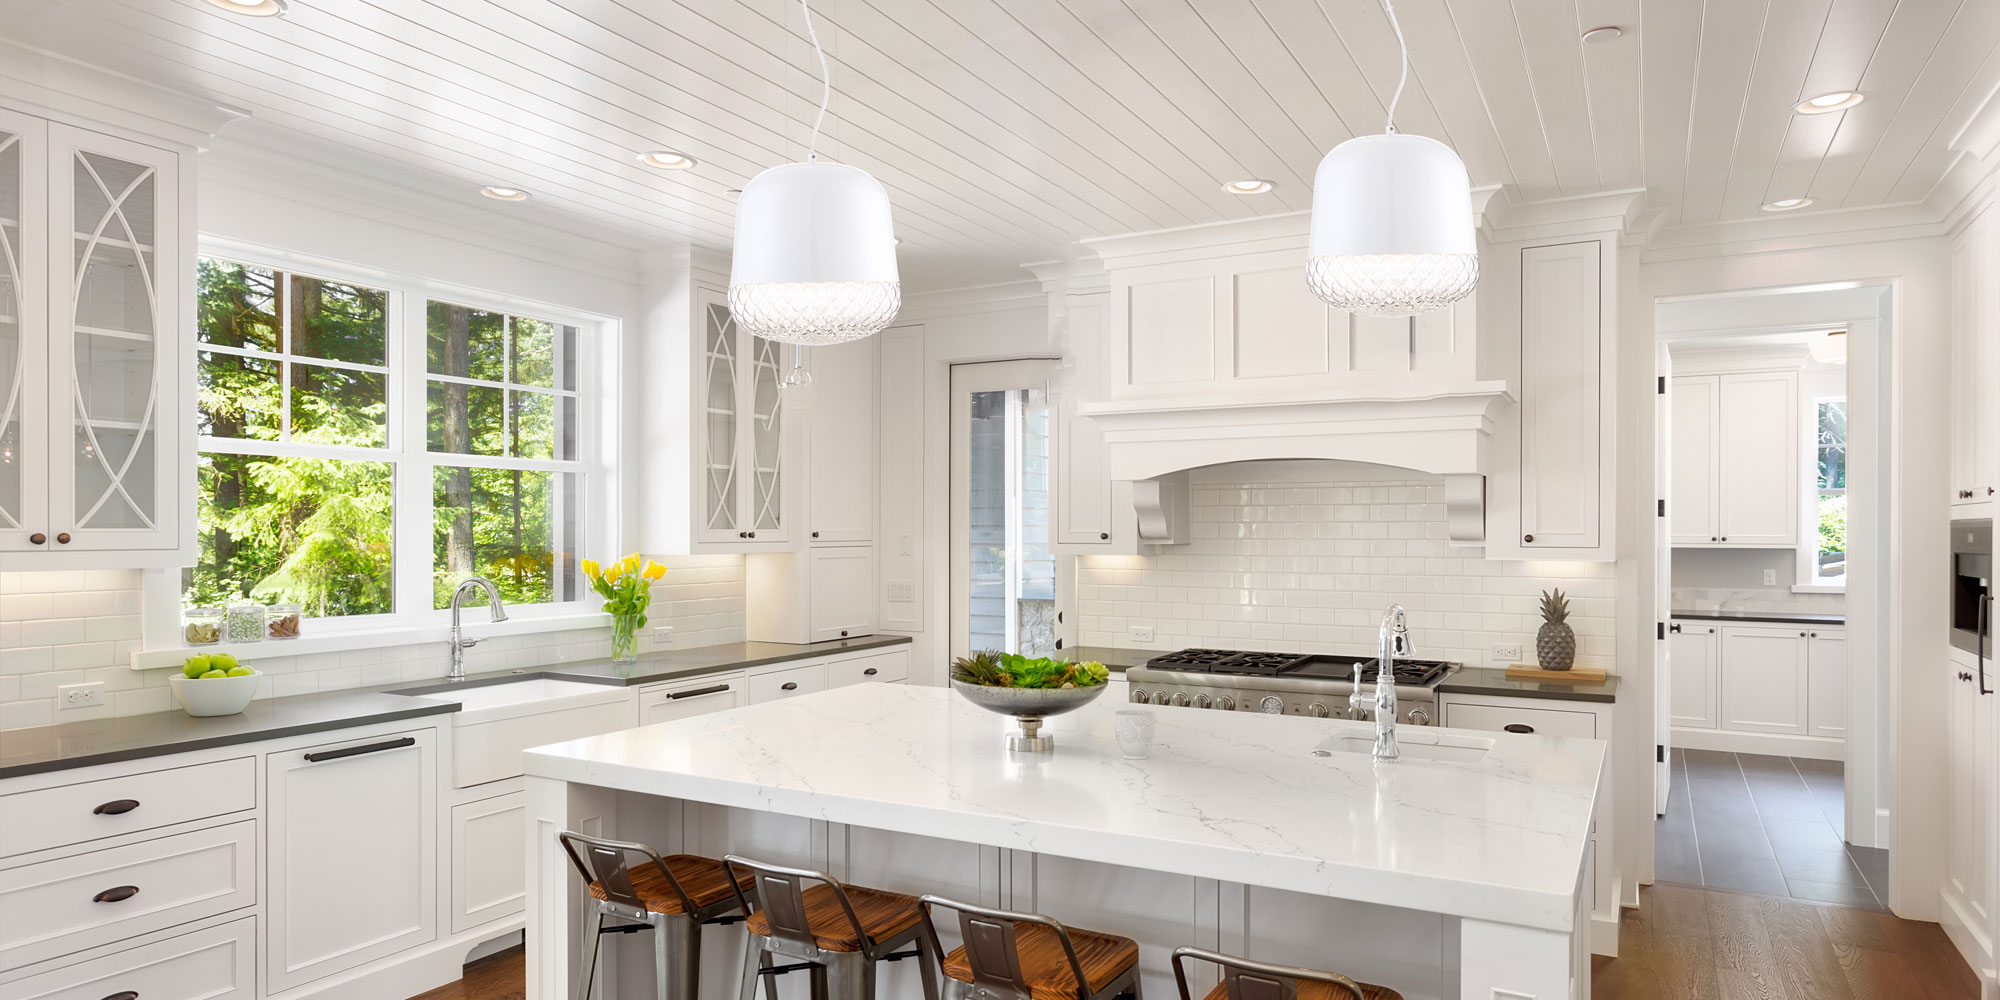 7 Simple Ways to Personalize Your Kitchen - Play Up Your Lighting